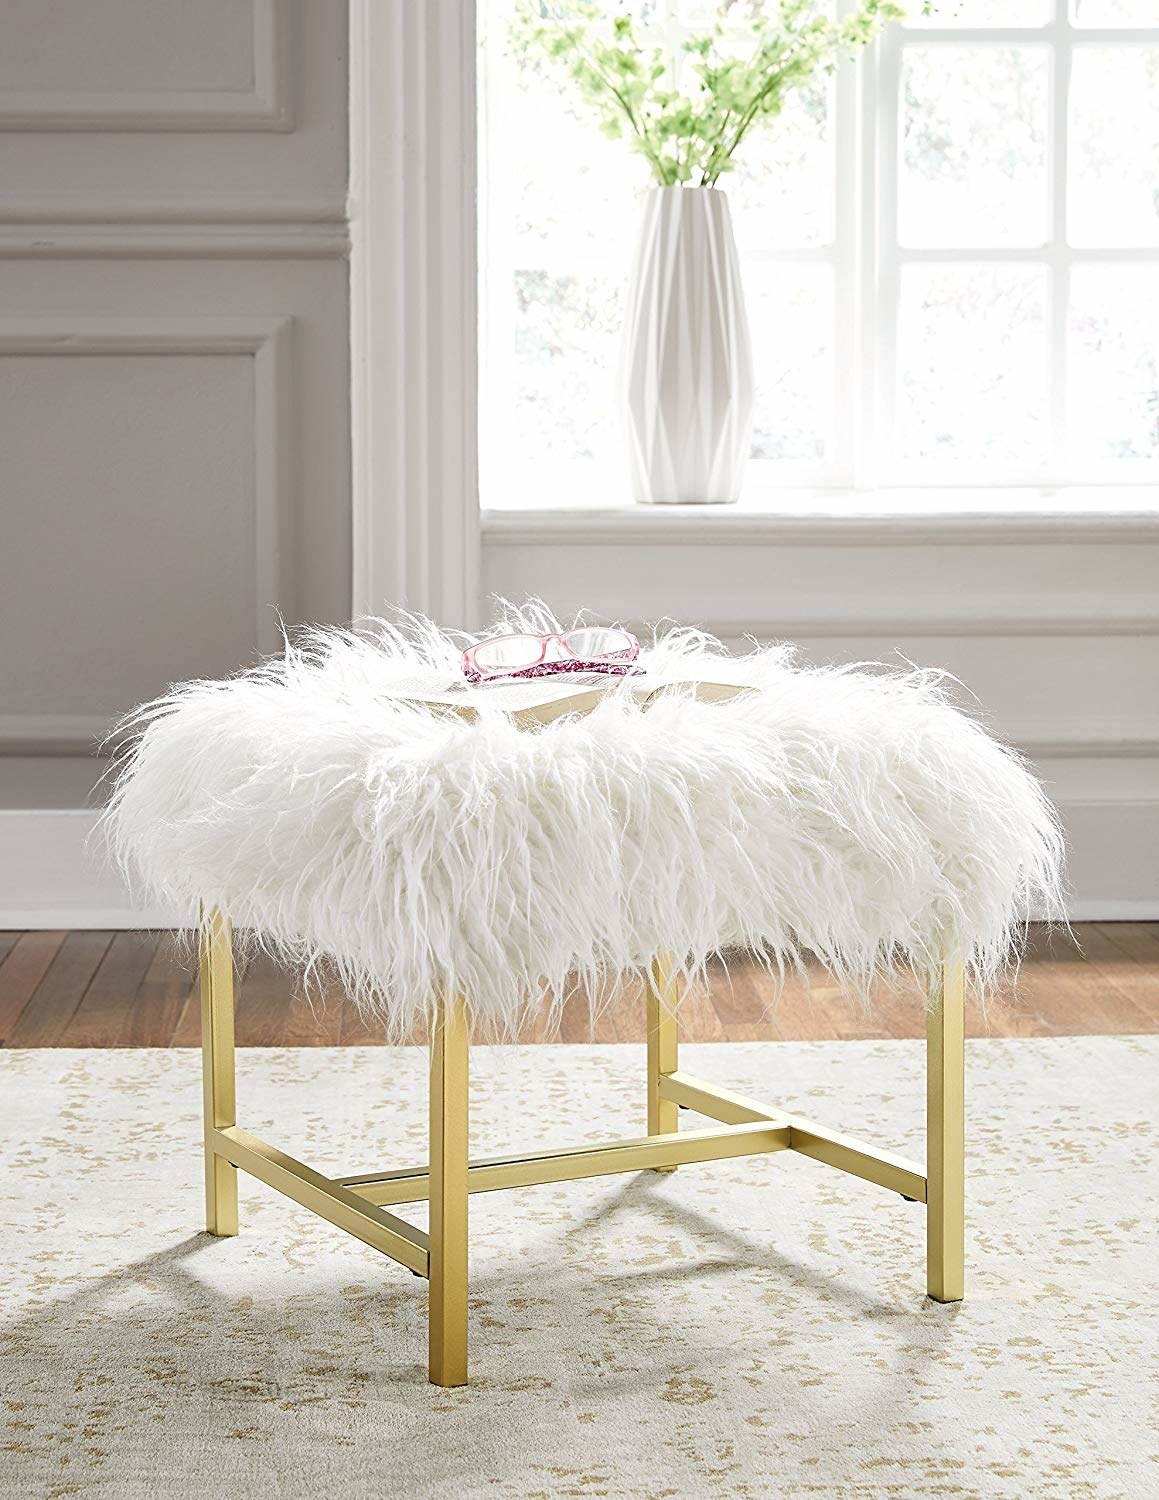 A square-shaped stool with white faux fur on top and gold acrylic legs